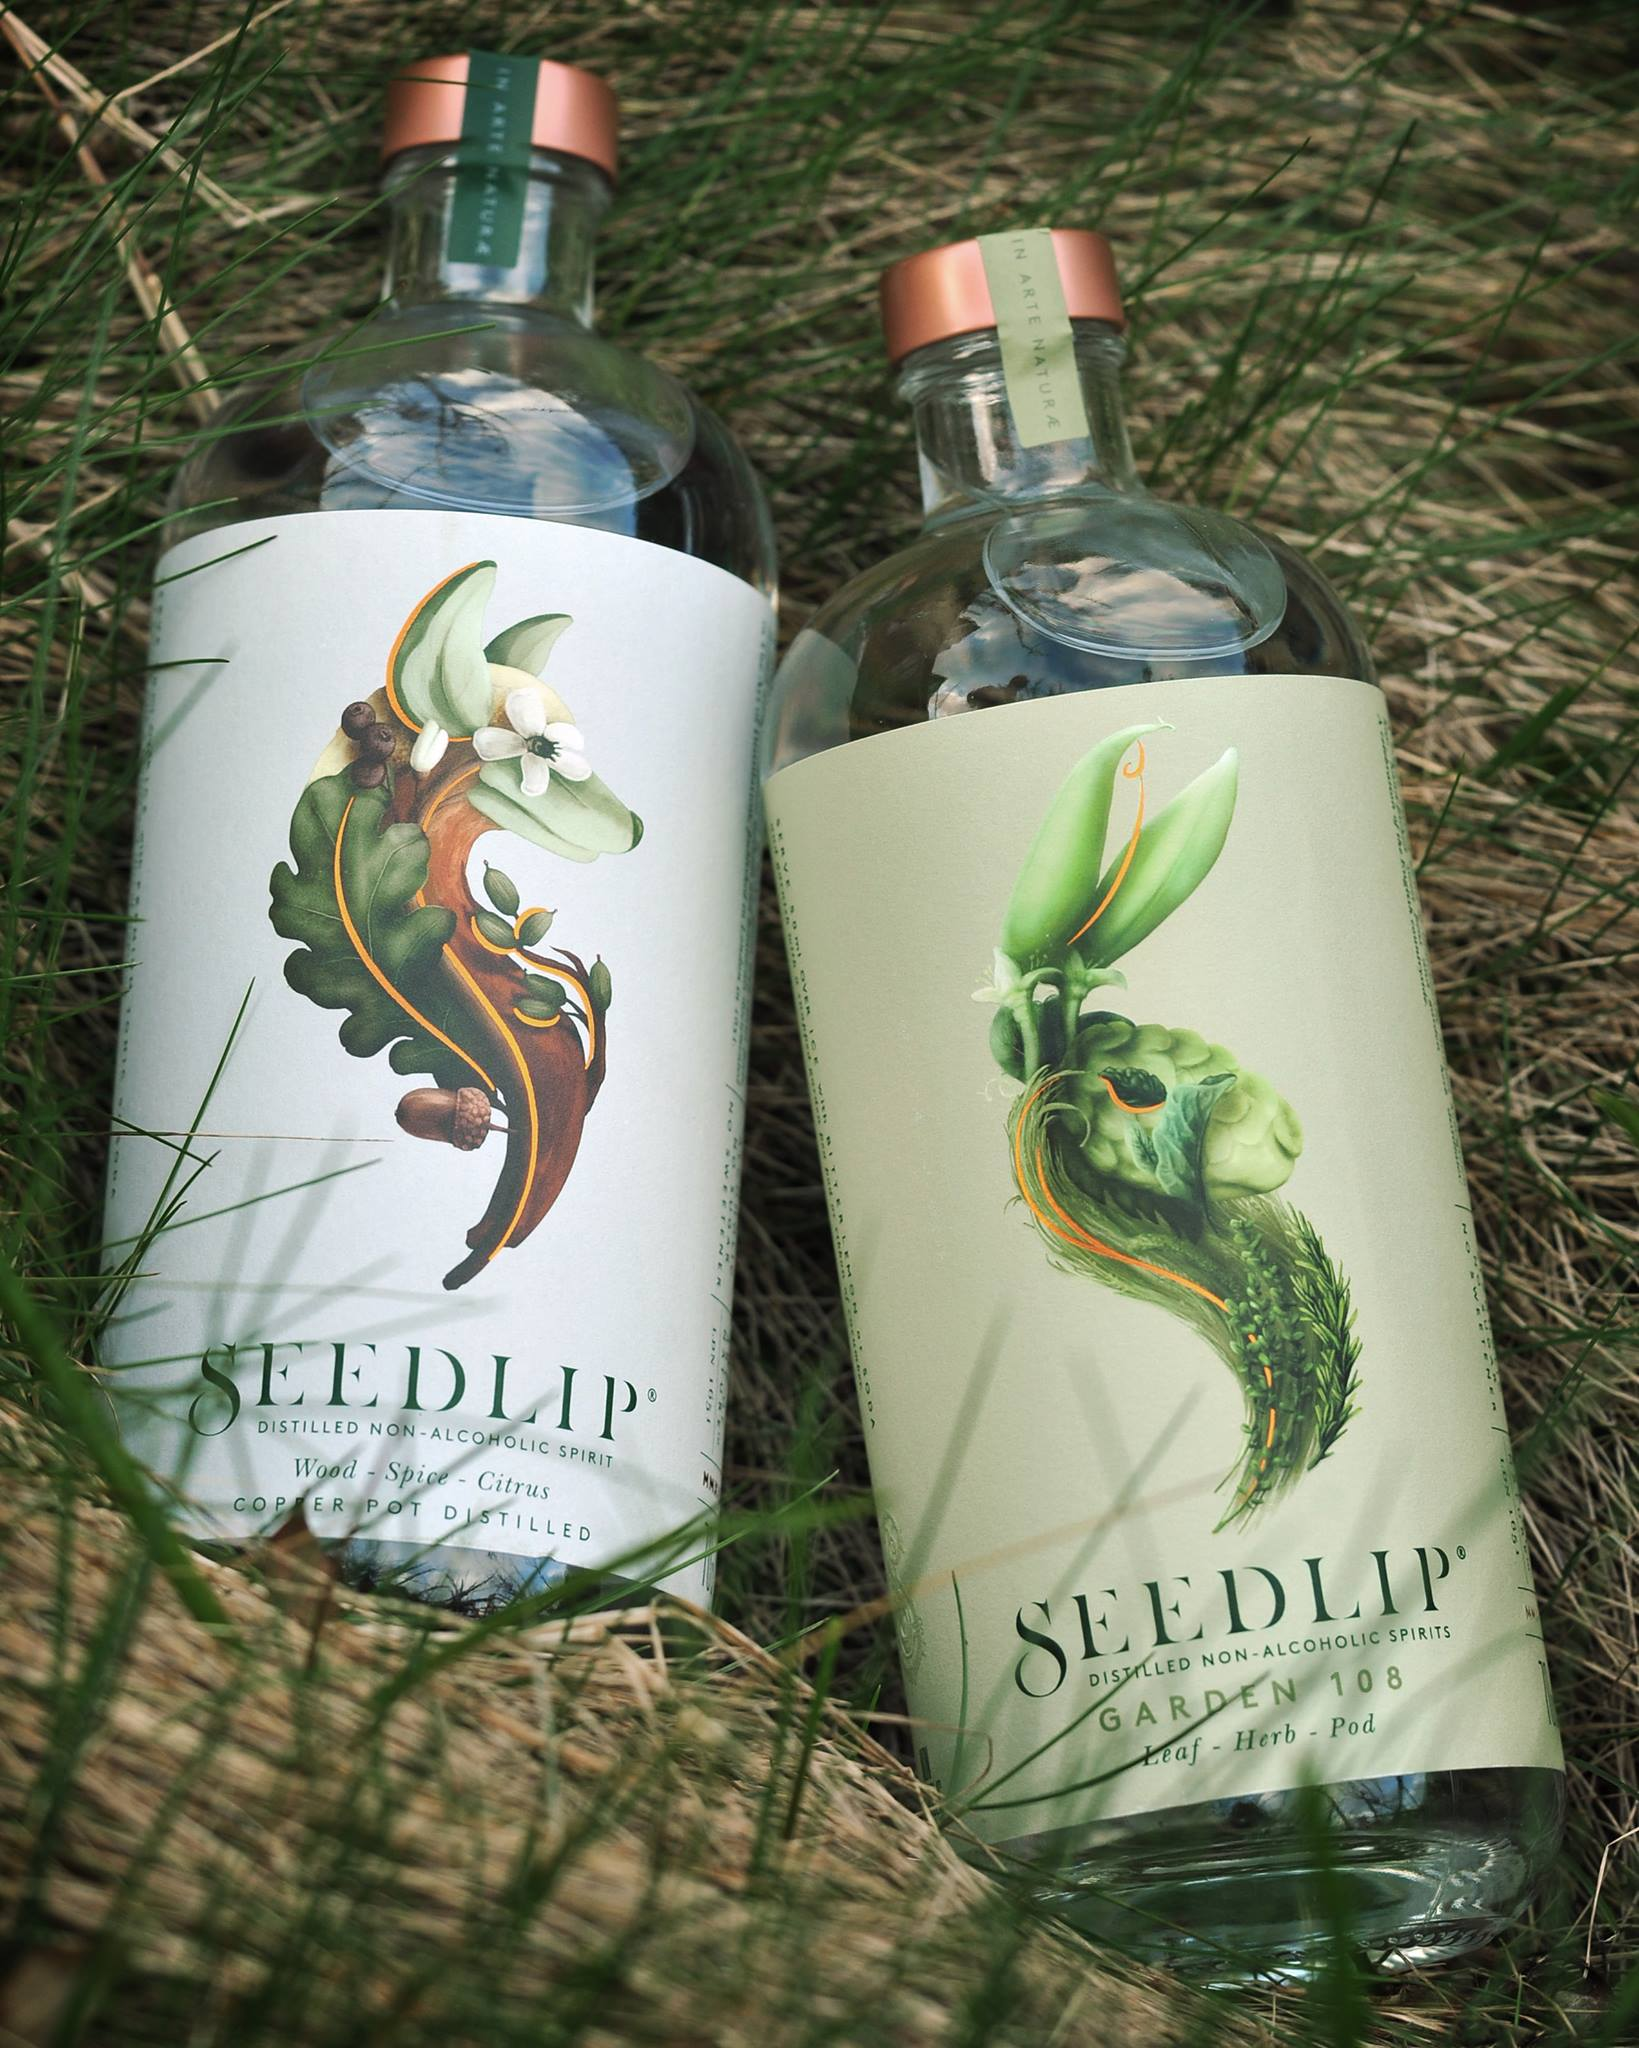 Seedlip Garden and Spice